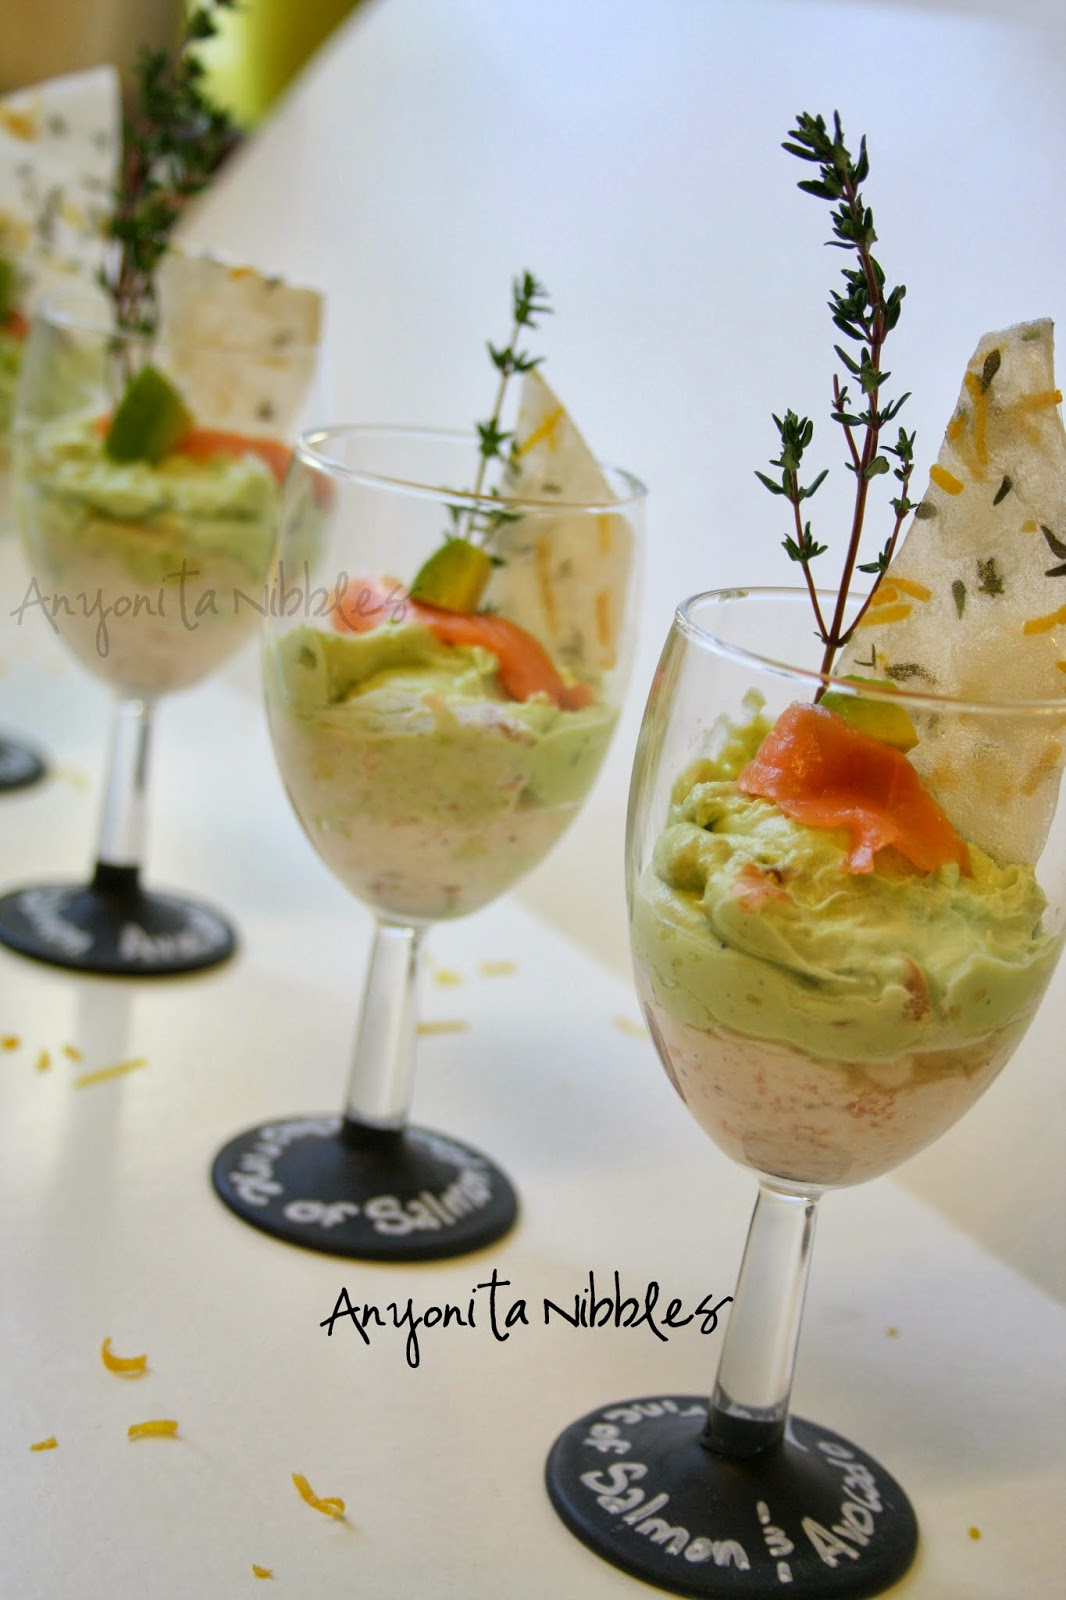 Smoked salmon mousse with avocado guacamole and lemon and thyme paper